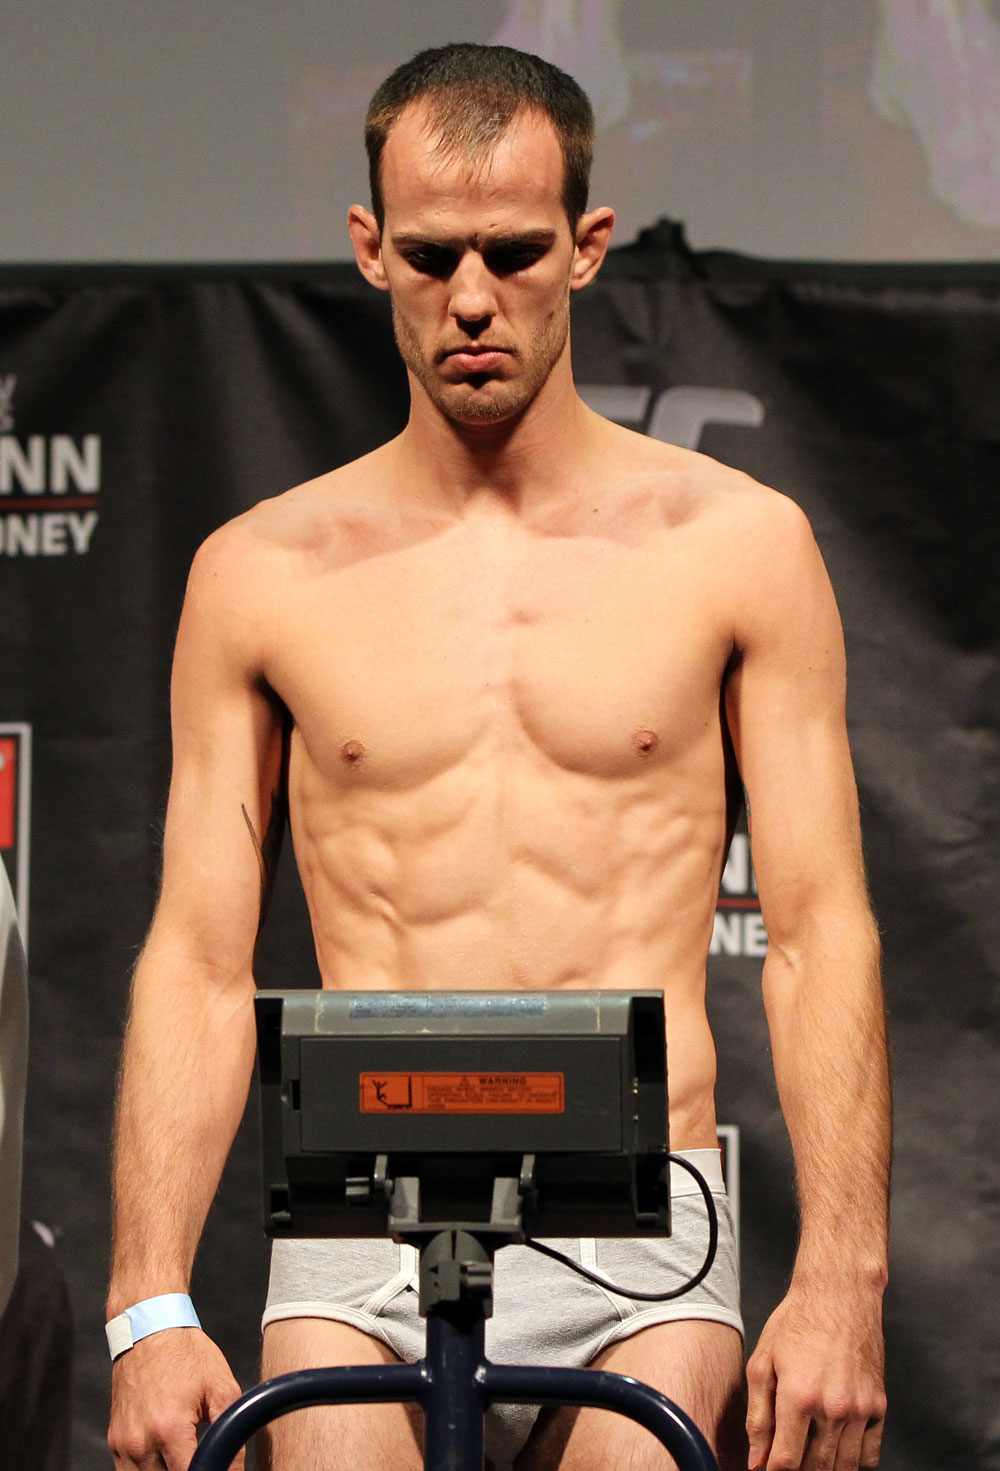 SYDNEY, AUSTRALIA - MARCH 02:  Cole Miller weighs in during the UFC on FX official weigh in at Allphones Arena on March 2, 2012 in Sydney, Australia.  (Photo by Josh Hedges/Zuffa LLC/Zuffa LLC via Getty Images) *** Local Caption *** Cole Miller